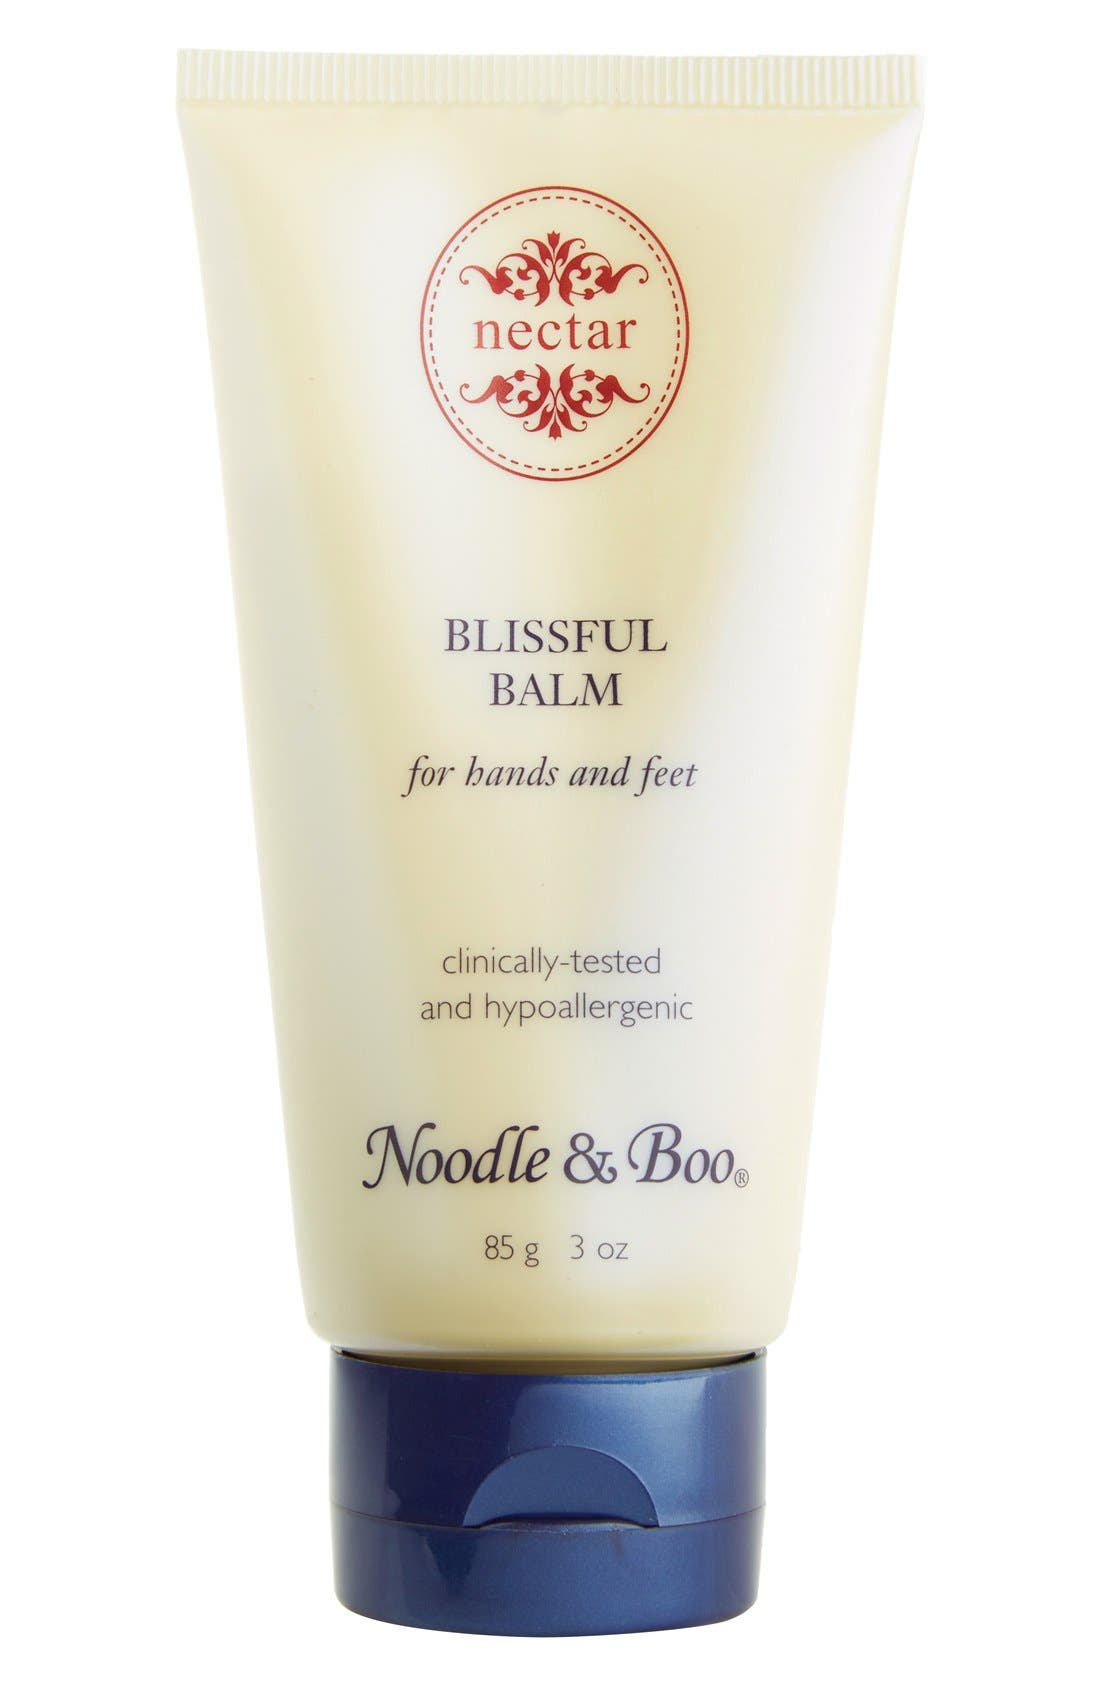 Noodle & Boo nectar - Blissful Balm